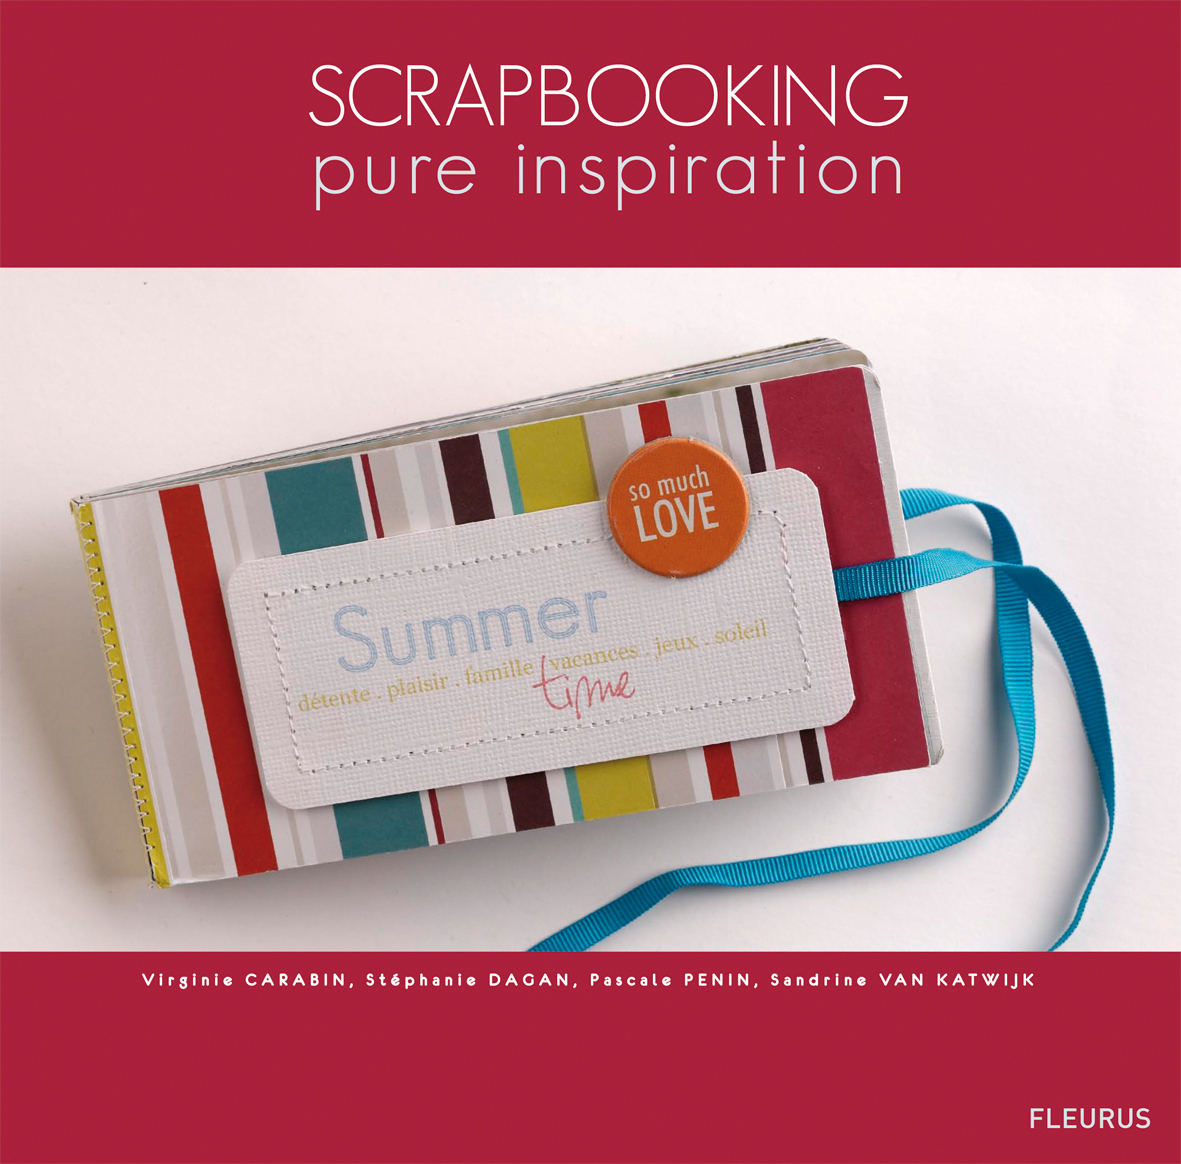 SCRAPBOOKING PURE INSPIRATION